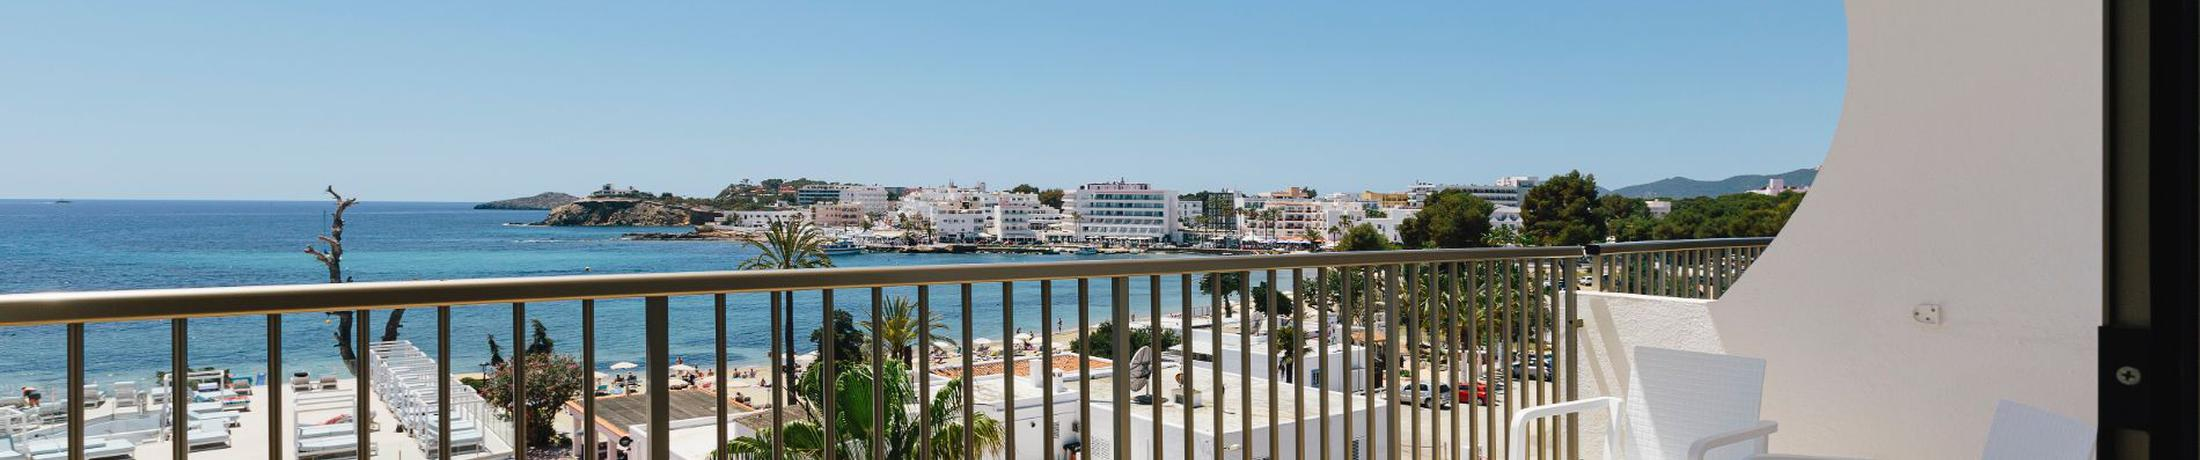 Commentaires AluaSun Miami Ibiza Apartments Apartaments Ibiza